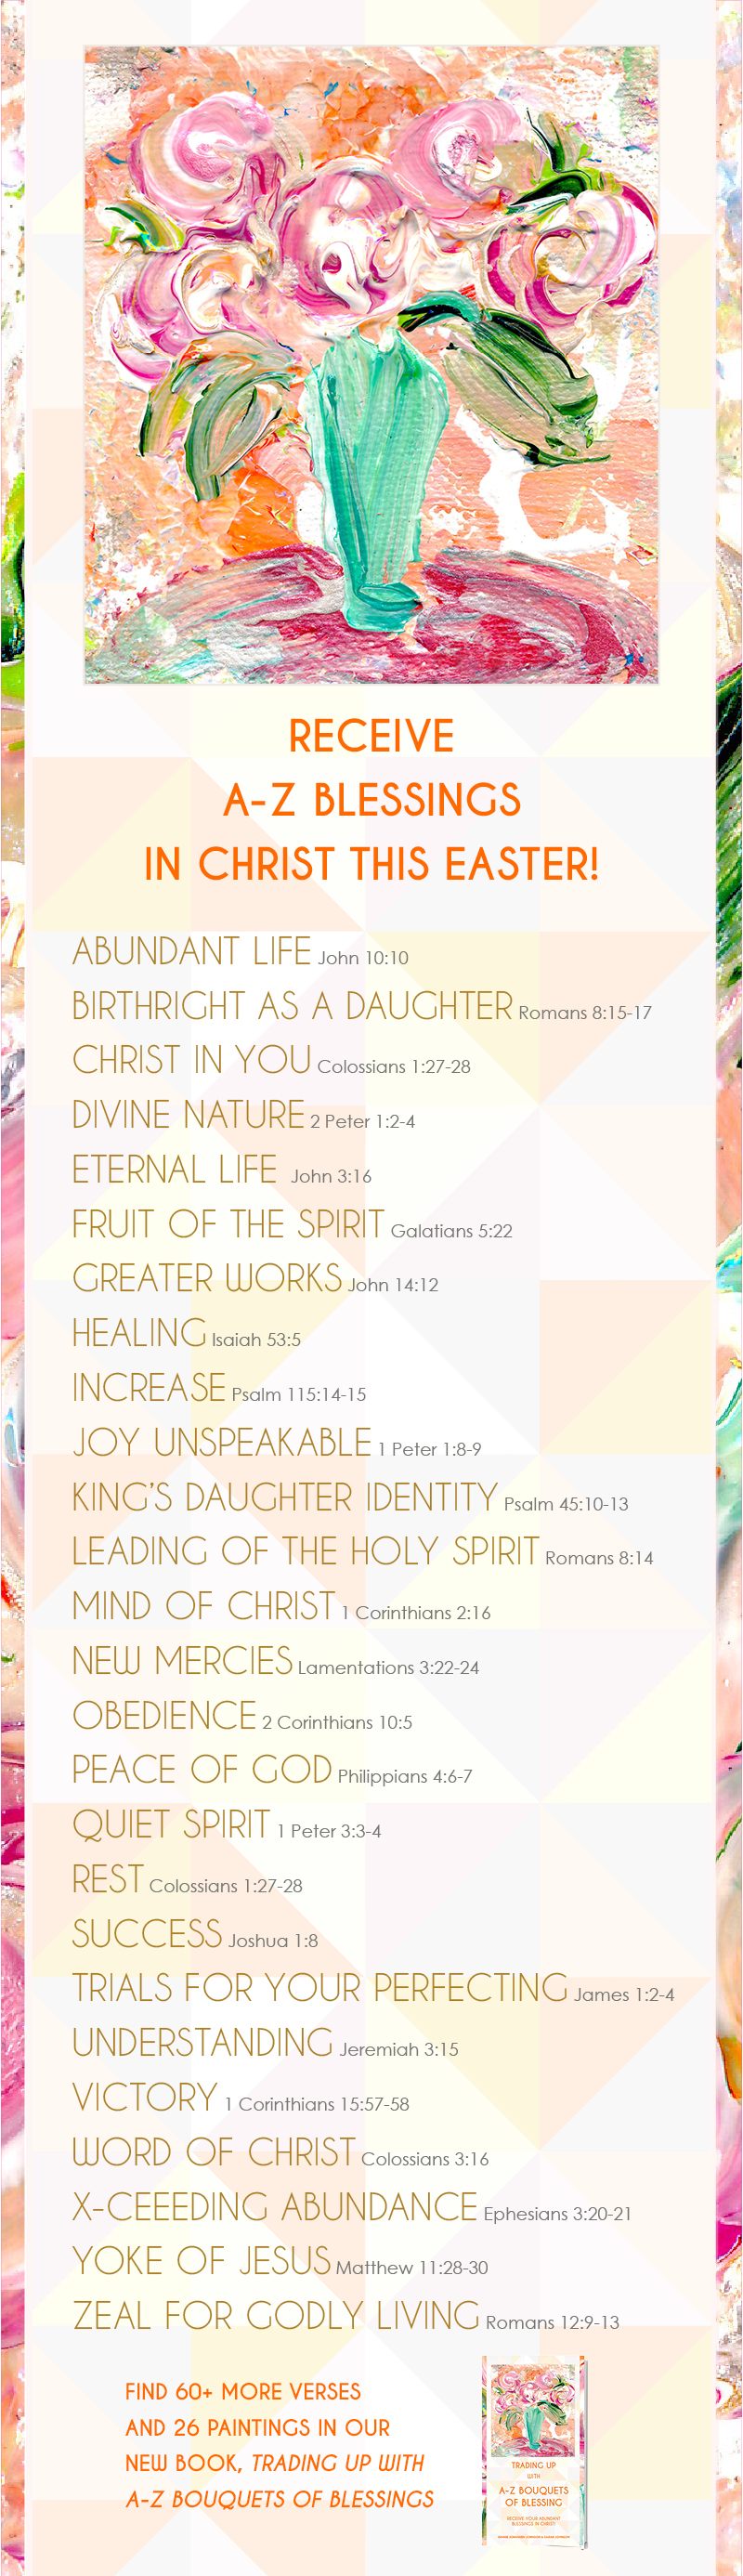 King's Daughters Easter Devotional  .jpg